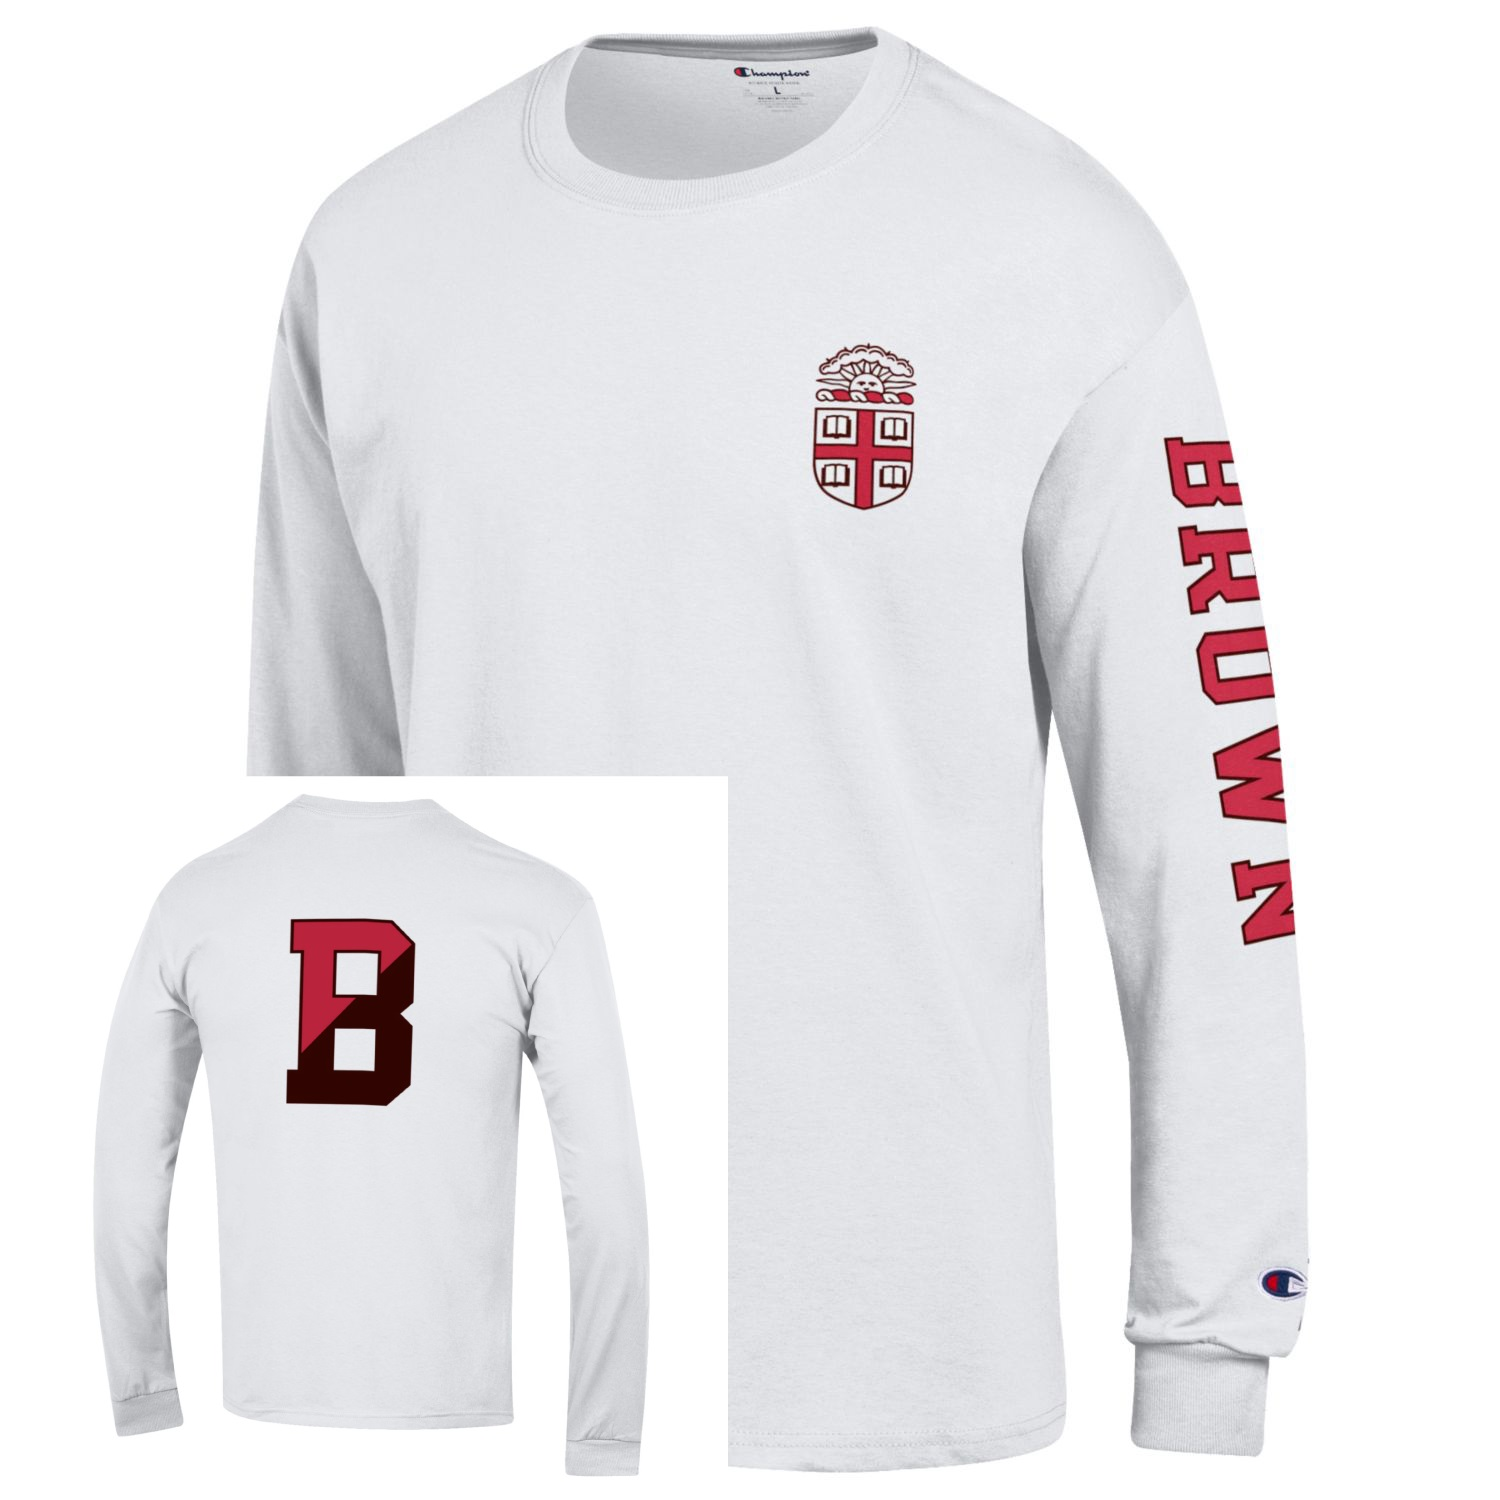 Image For Champion Jersey Long Sleeve White Tee